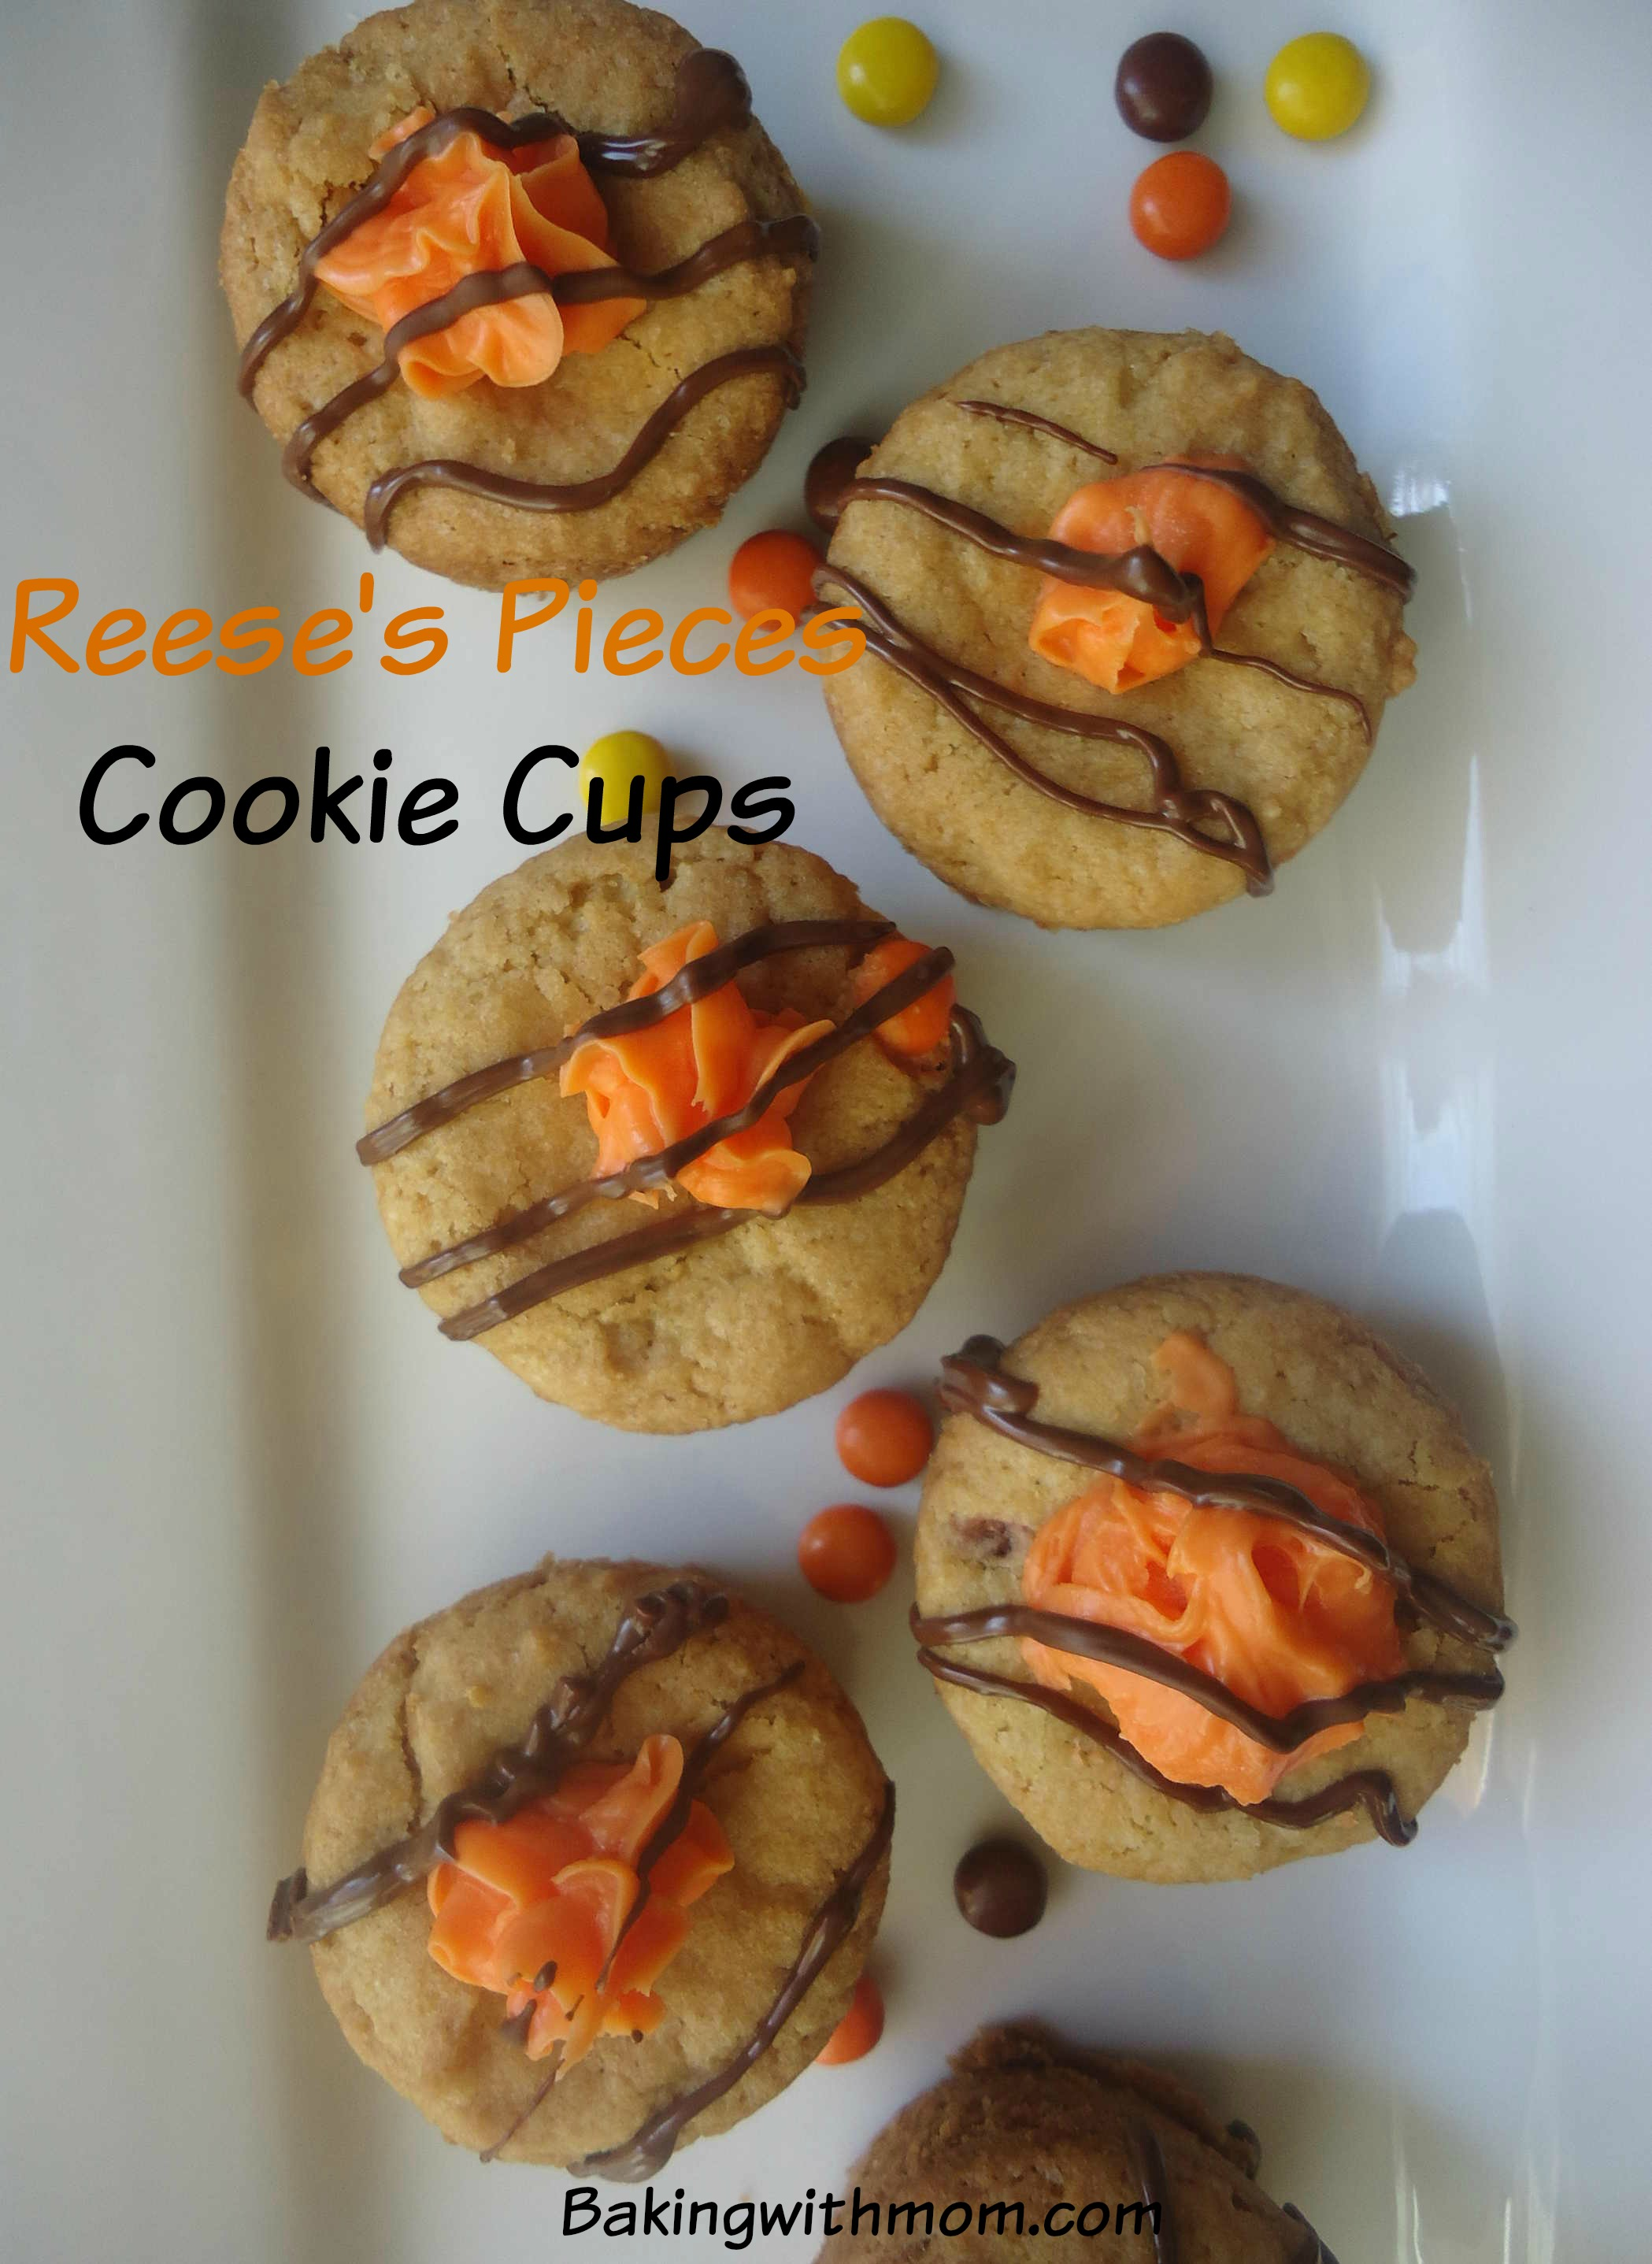 Reese's Pieces Cookie Cups a rich peanut butter cookie great for kid's snacks or dessert